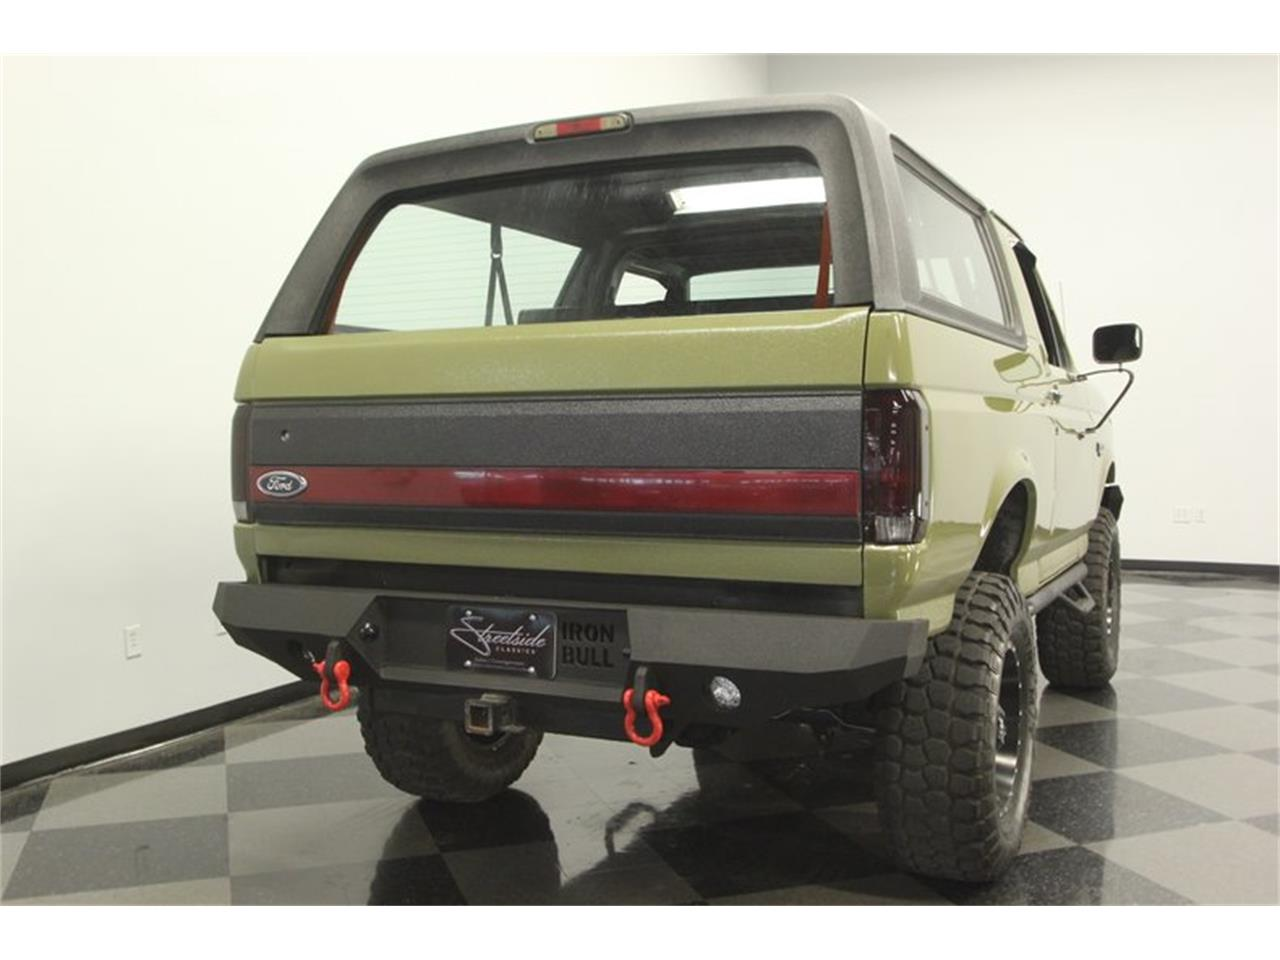 1996 Ford Bronco for sale in Lutz, FL – photo 11